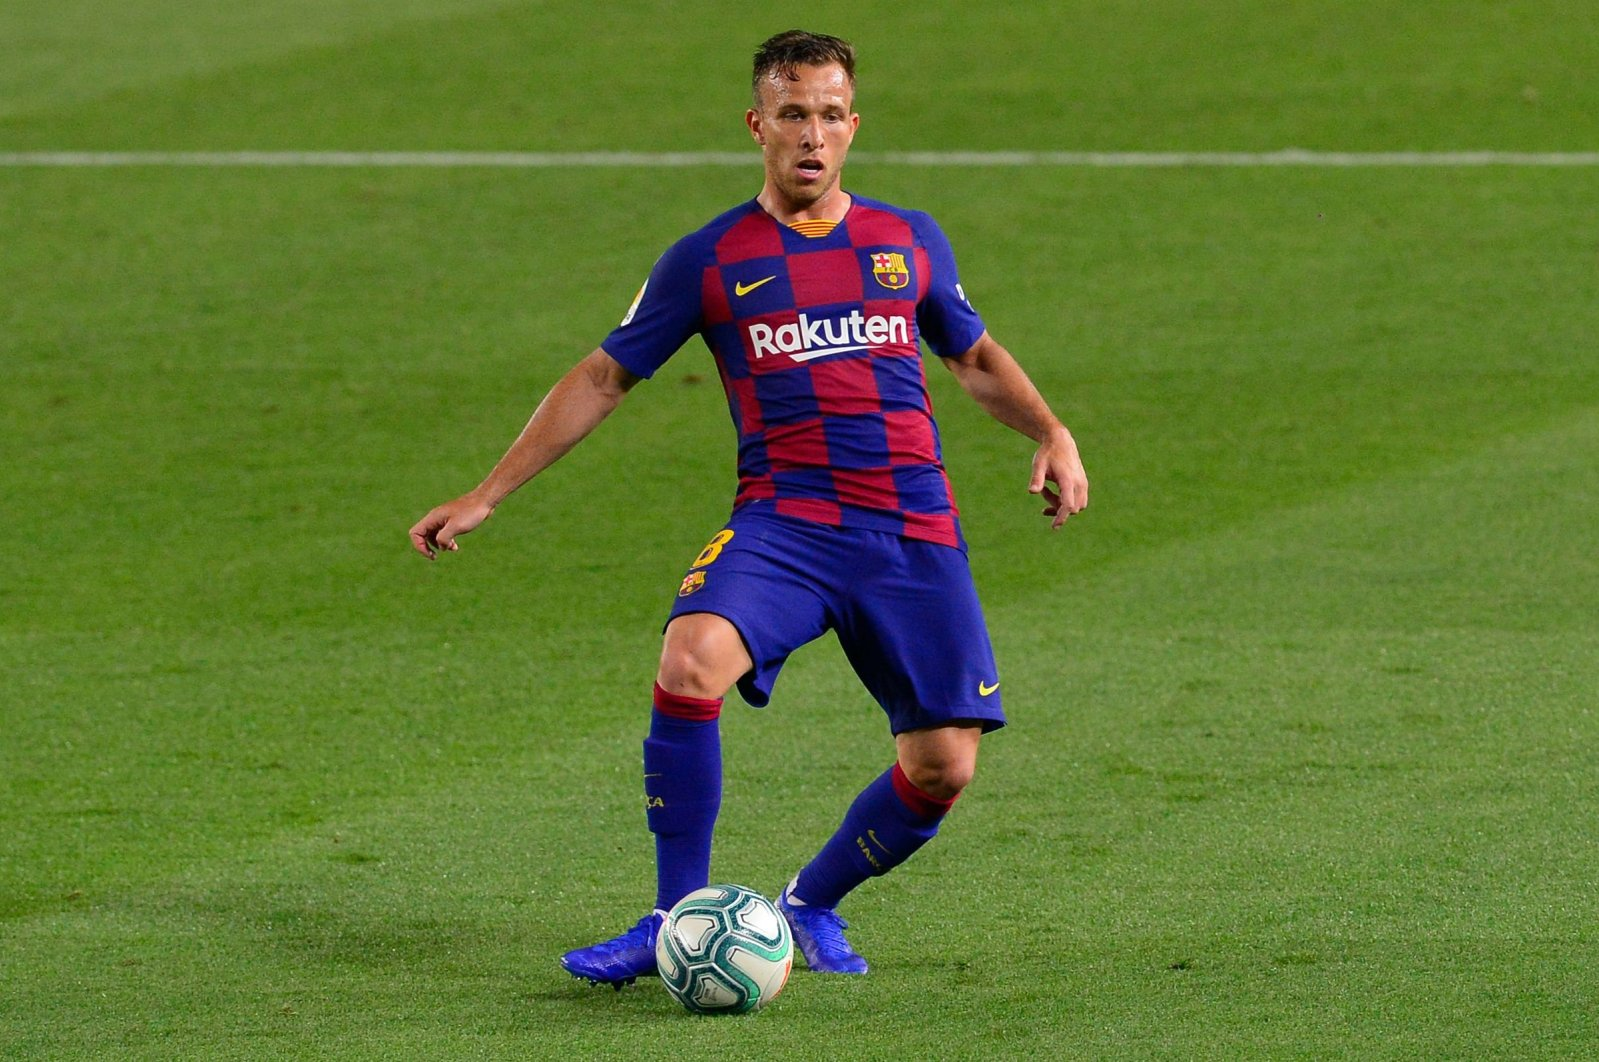 Barcelona's Brazilian midfielder Arthur controls the ball during the Spanish league football match between FC Barcelona and Athletic Club Bilbao at the Camp Nou stadium in Barcelona, Spain, June 23, 2020. (AFP Photo)